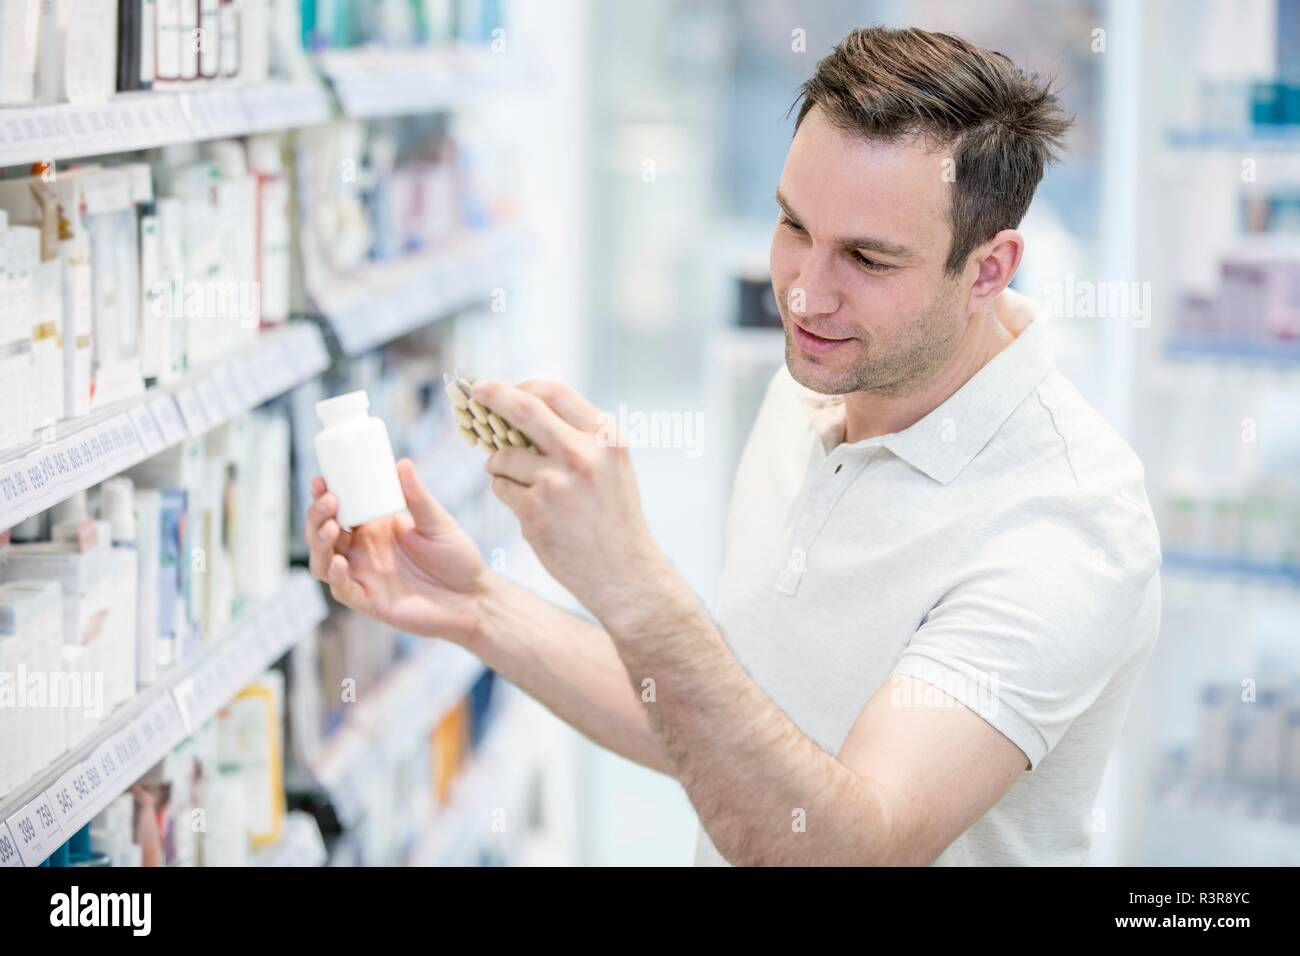 Male customer reading label on pill blister pack in pharmacy. - Stock Image